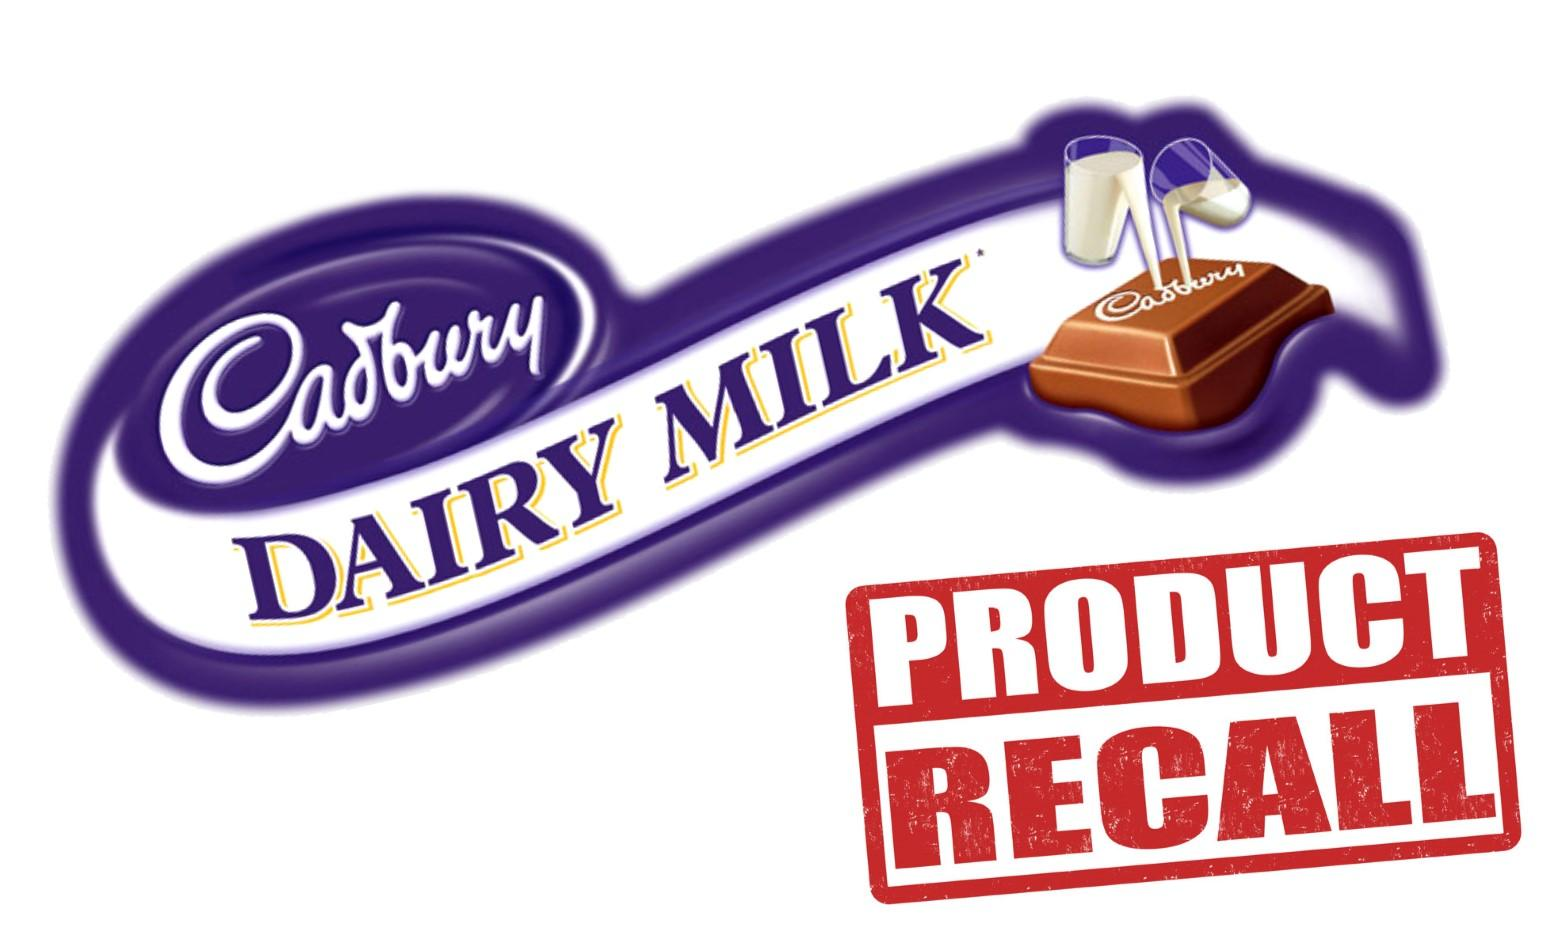 Cadbury Desserts Recalled over Fears of Containing Listeria Bacteria